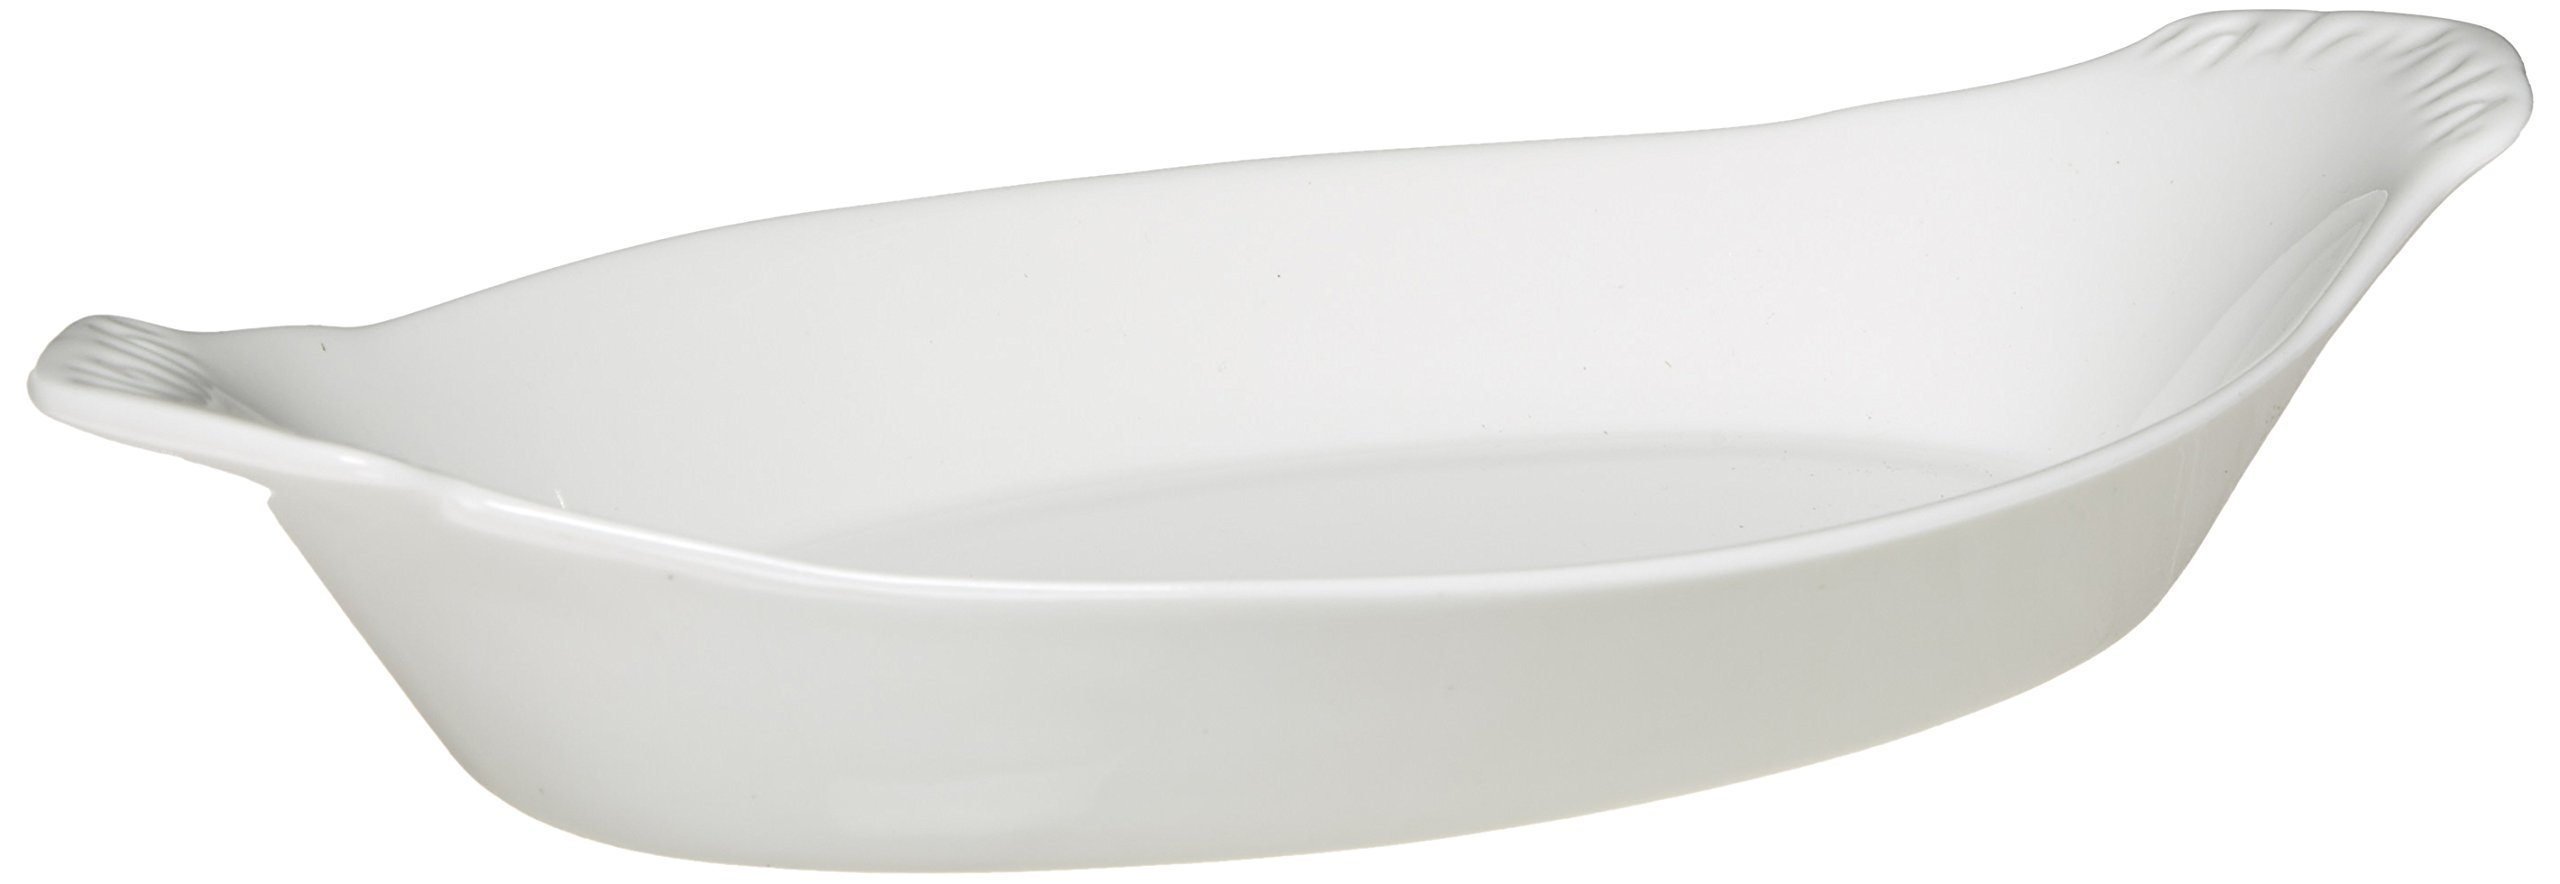 Maxwell and Williams P017323 Basics Oval Au Gratin Dish, 7-Inch, White